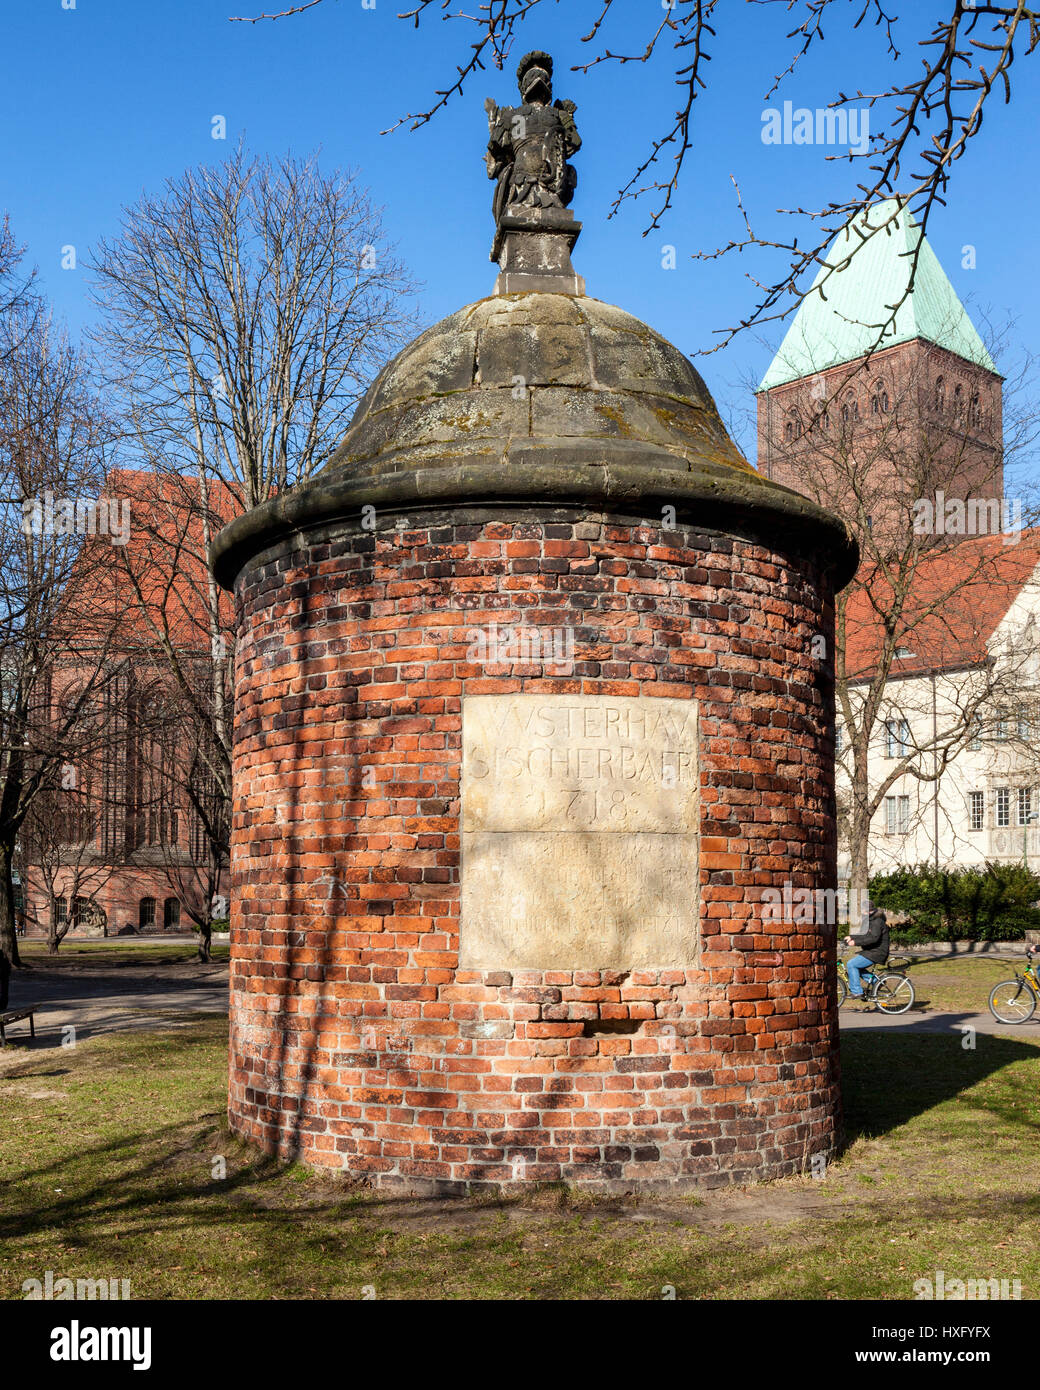 The Wusterhausener Bär (or Wusterhausischer Bär) is a small round tower with a helmet shaped dome that - Stock Image